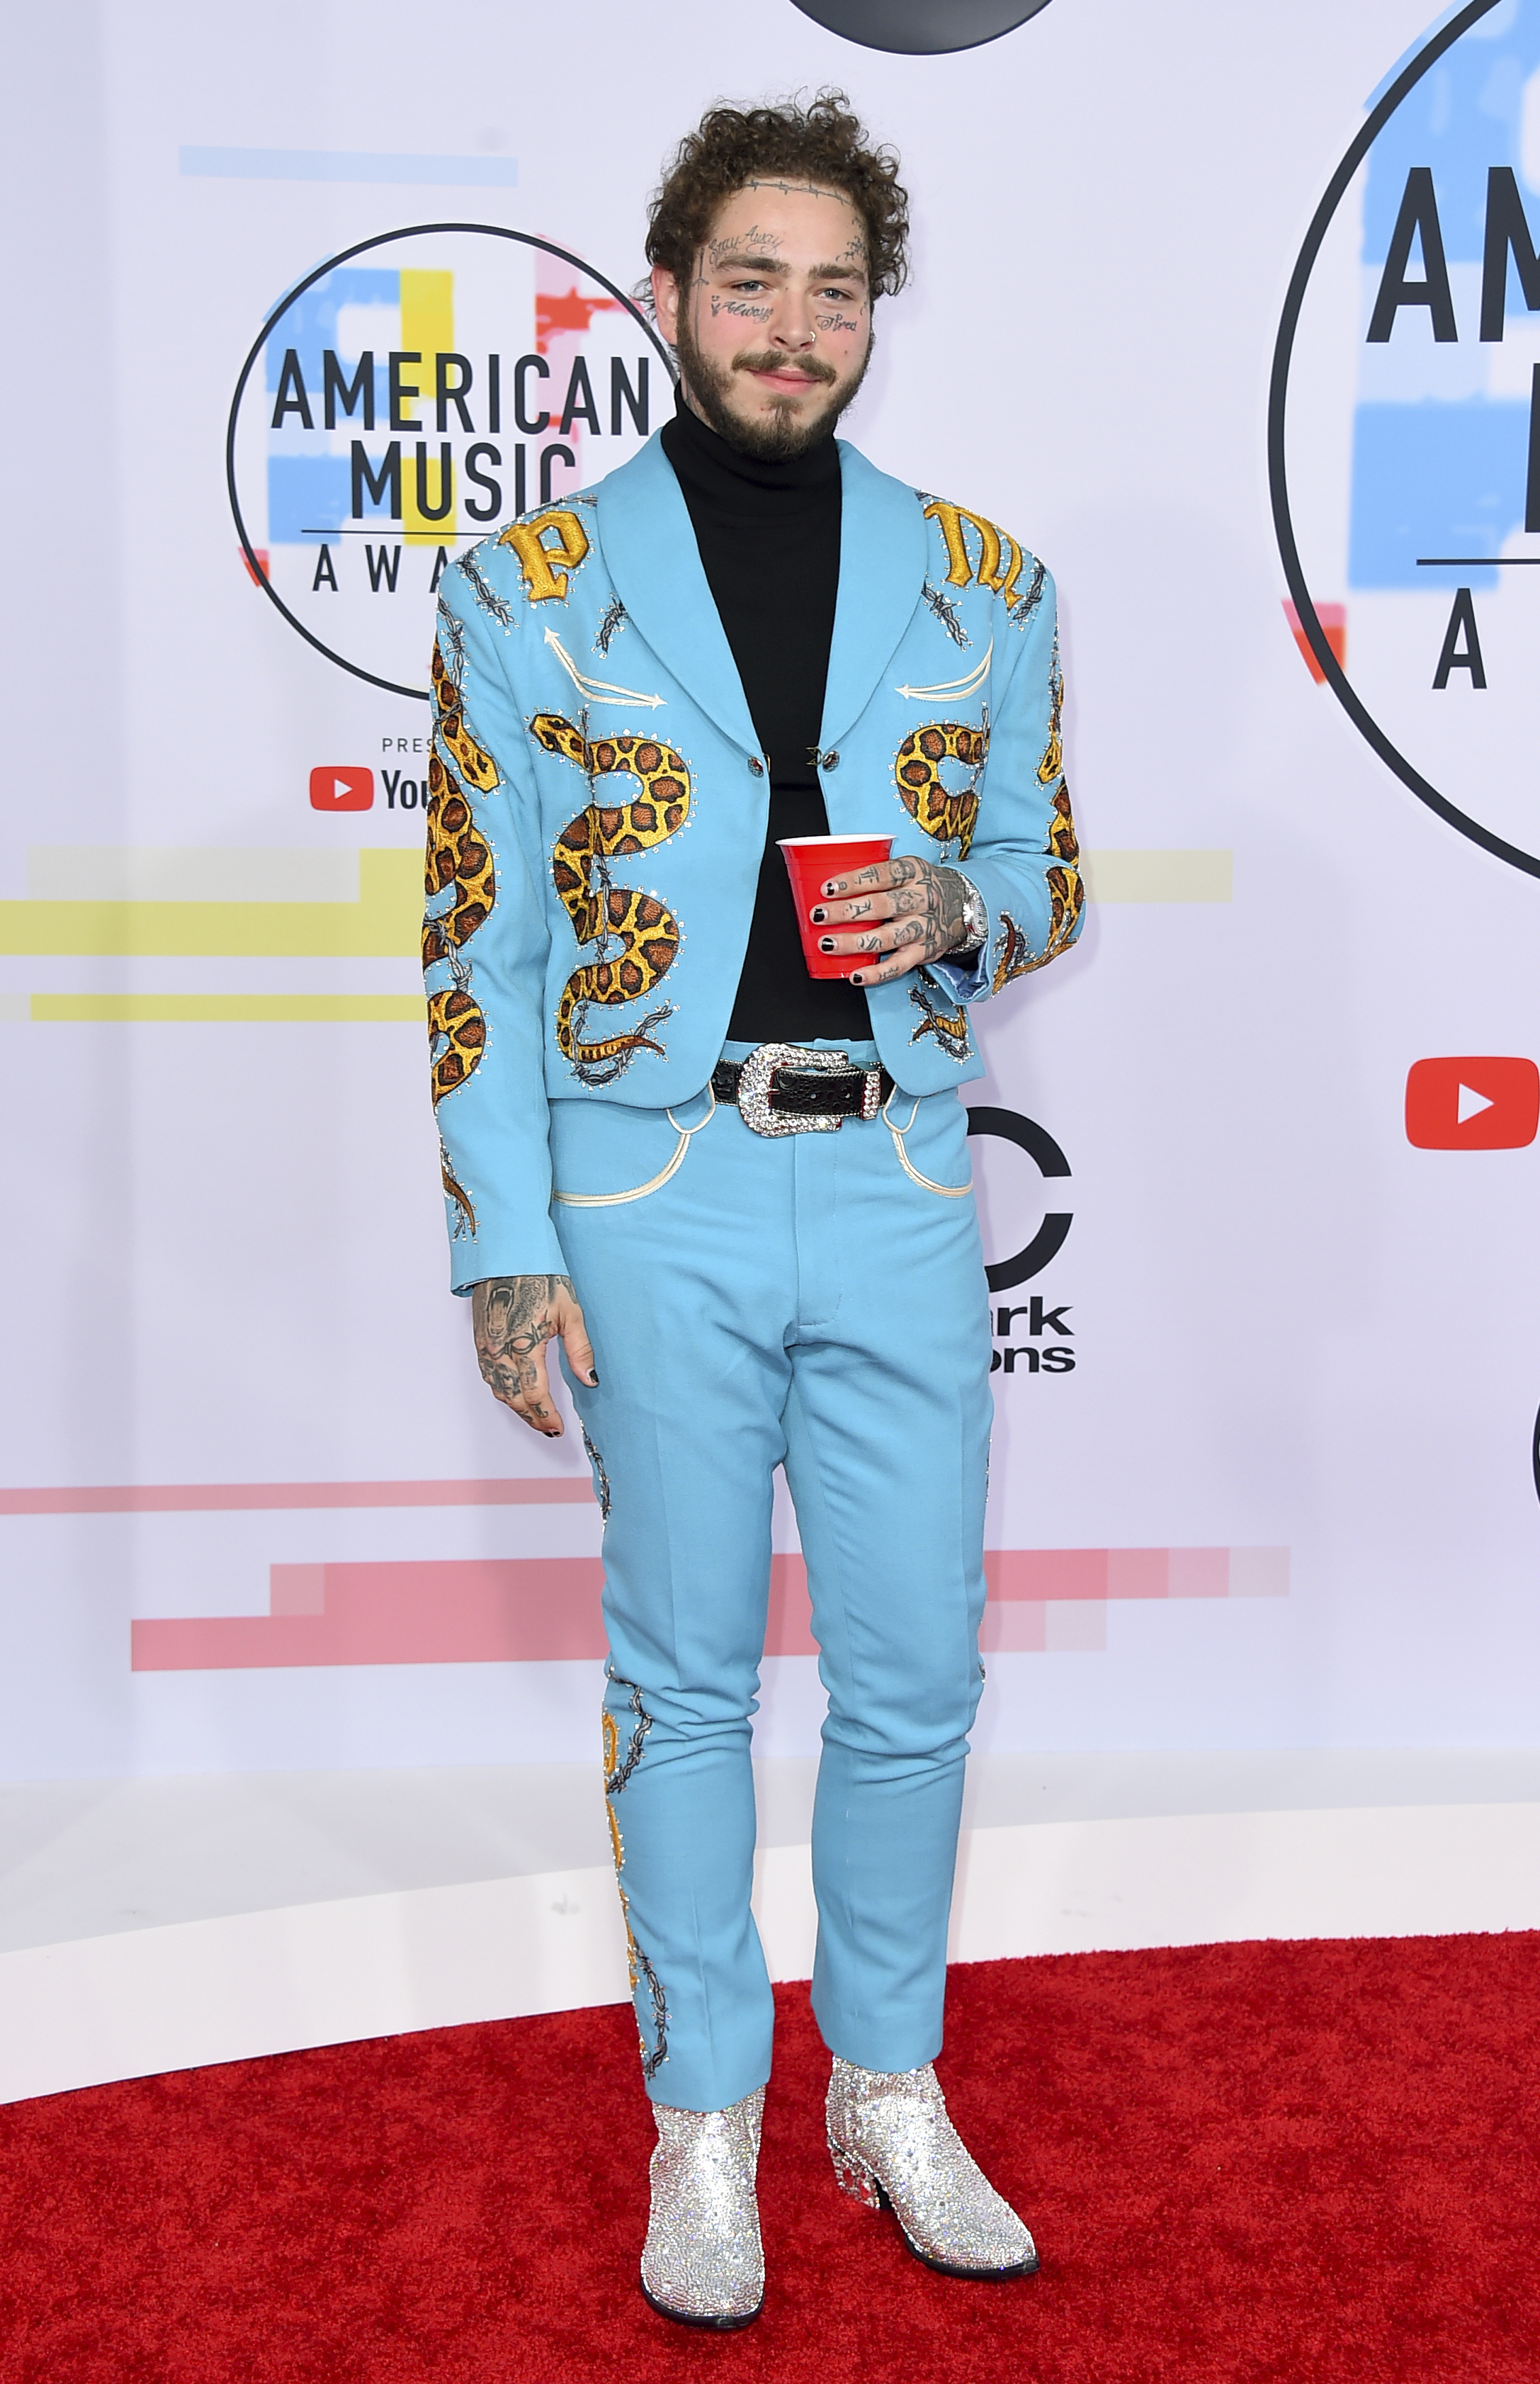 "<div class=""meta image-caption""><div class=""origin-logo origin-image none""><span>none</span></div><span class=""caption-text"">Post Malone arrives at the American Music Awards on Tuesday, Oct. 9, 2018, at the Microsoft Theater in Los Angeles. (Jordan Strauss/Invision/AP)</span></div>"